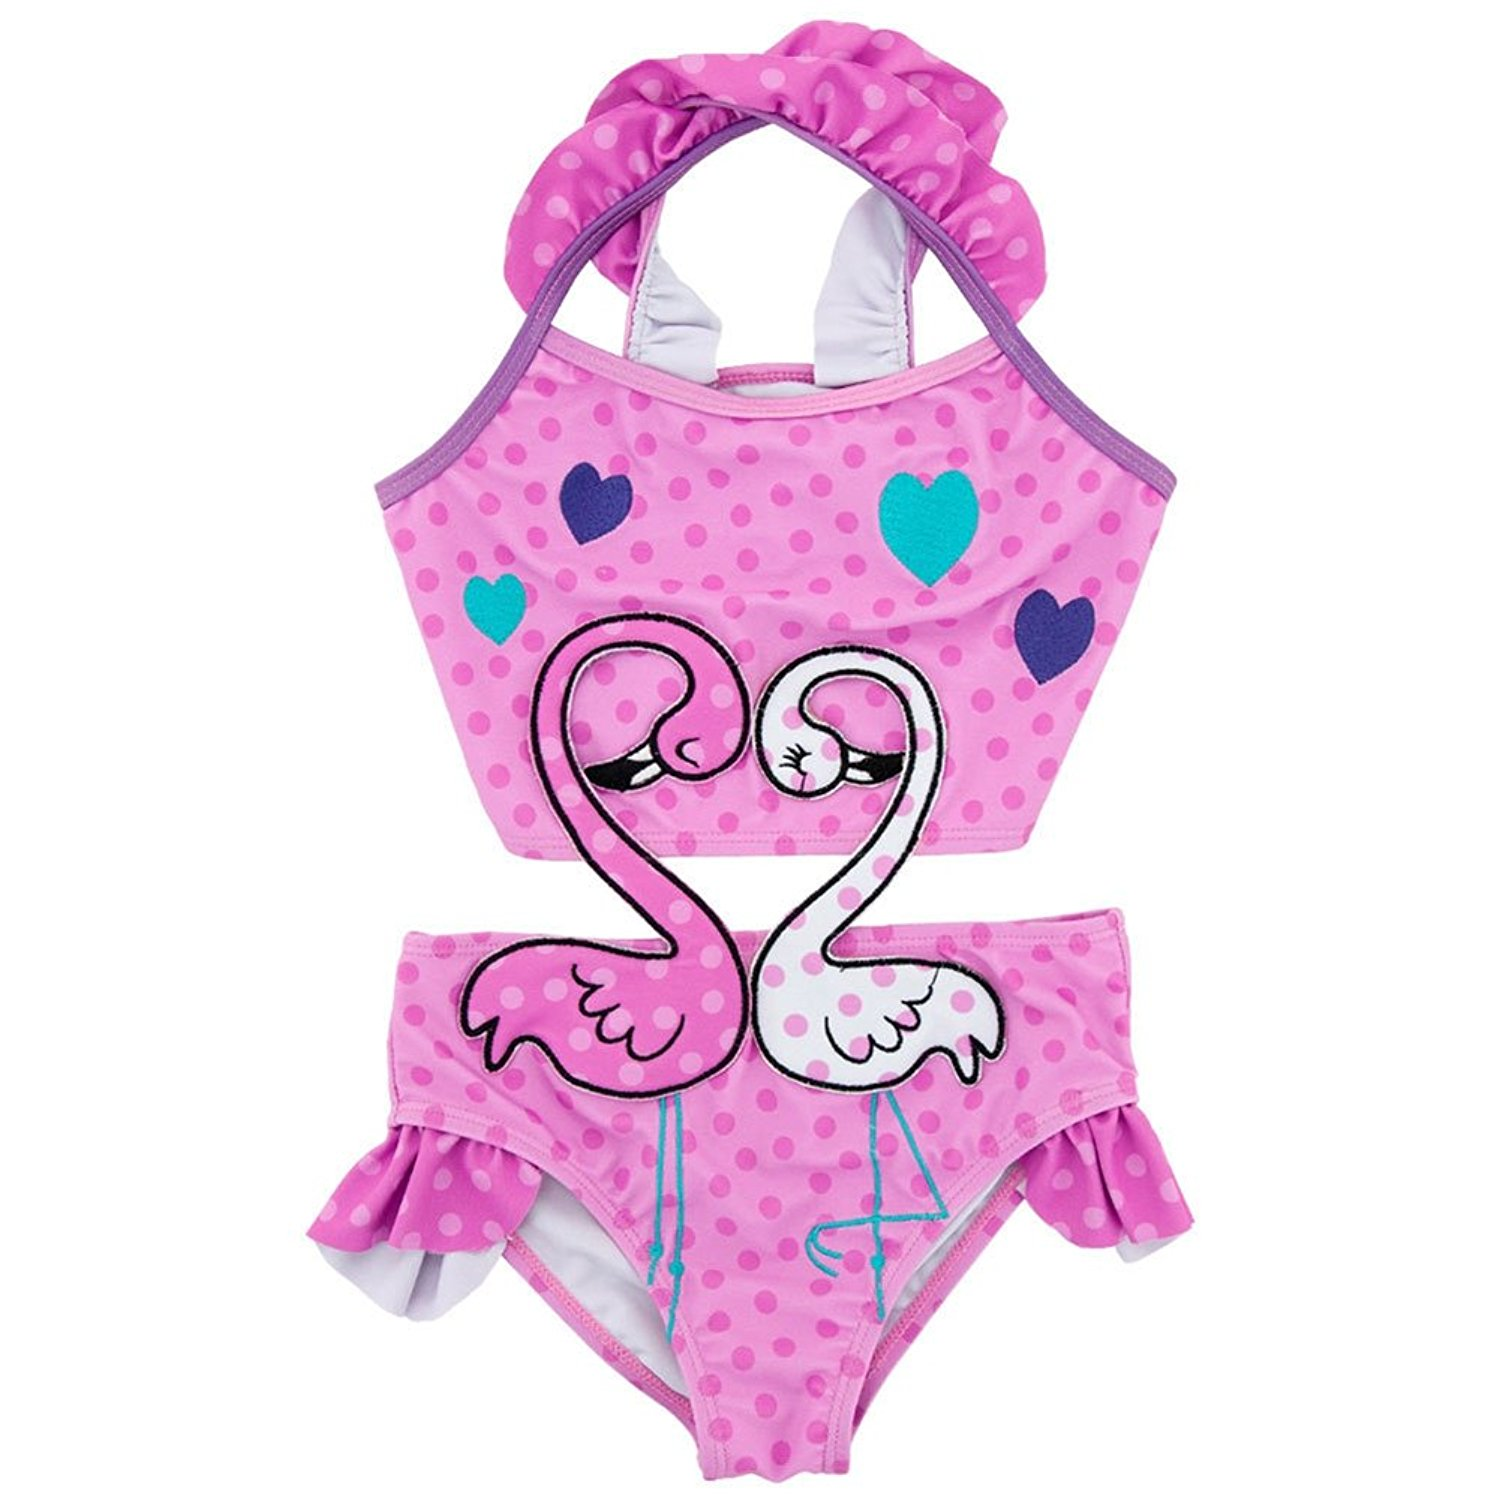 2ceb7236f5c30 Get Quotations · BERTERI One-Piece Cute Pink Dot Swans Swimsuits with  Swimming Cap Bathing Suits Swimwear Set